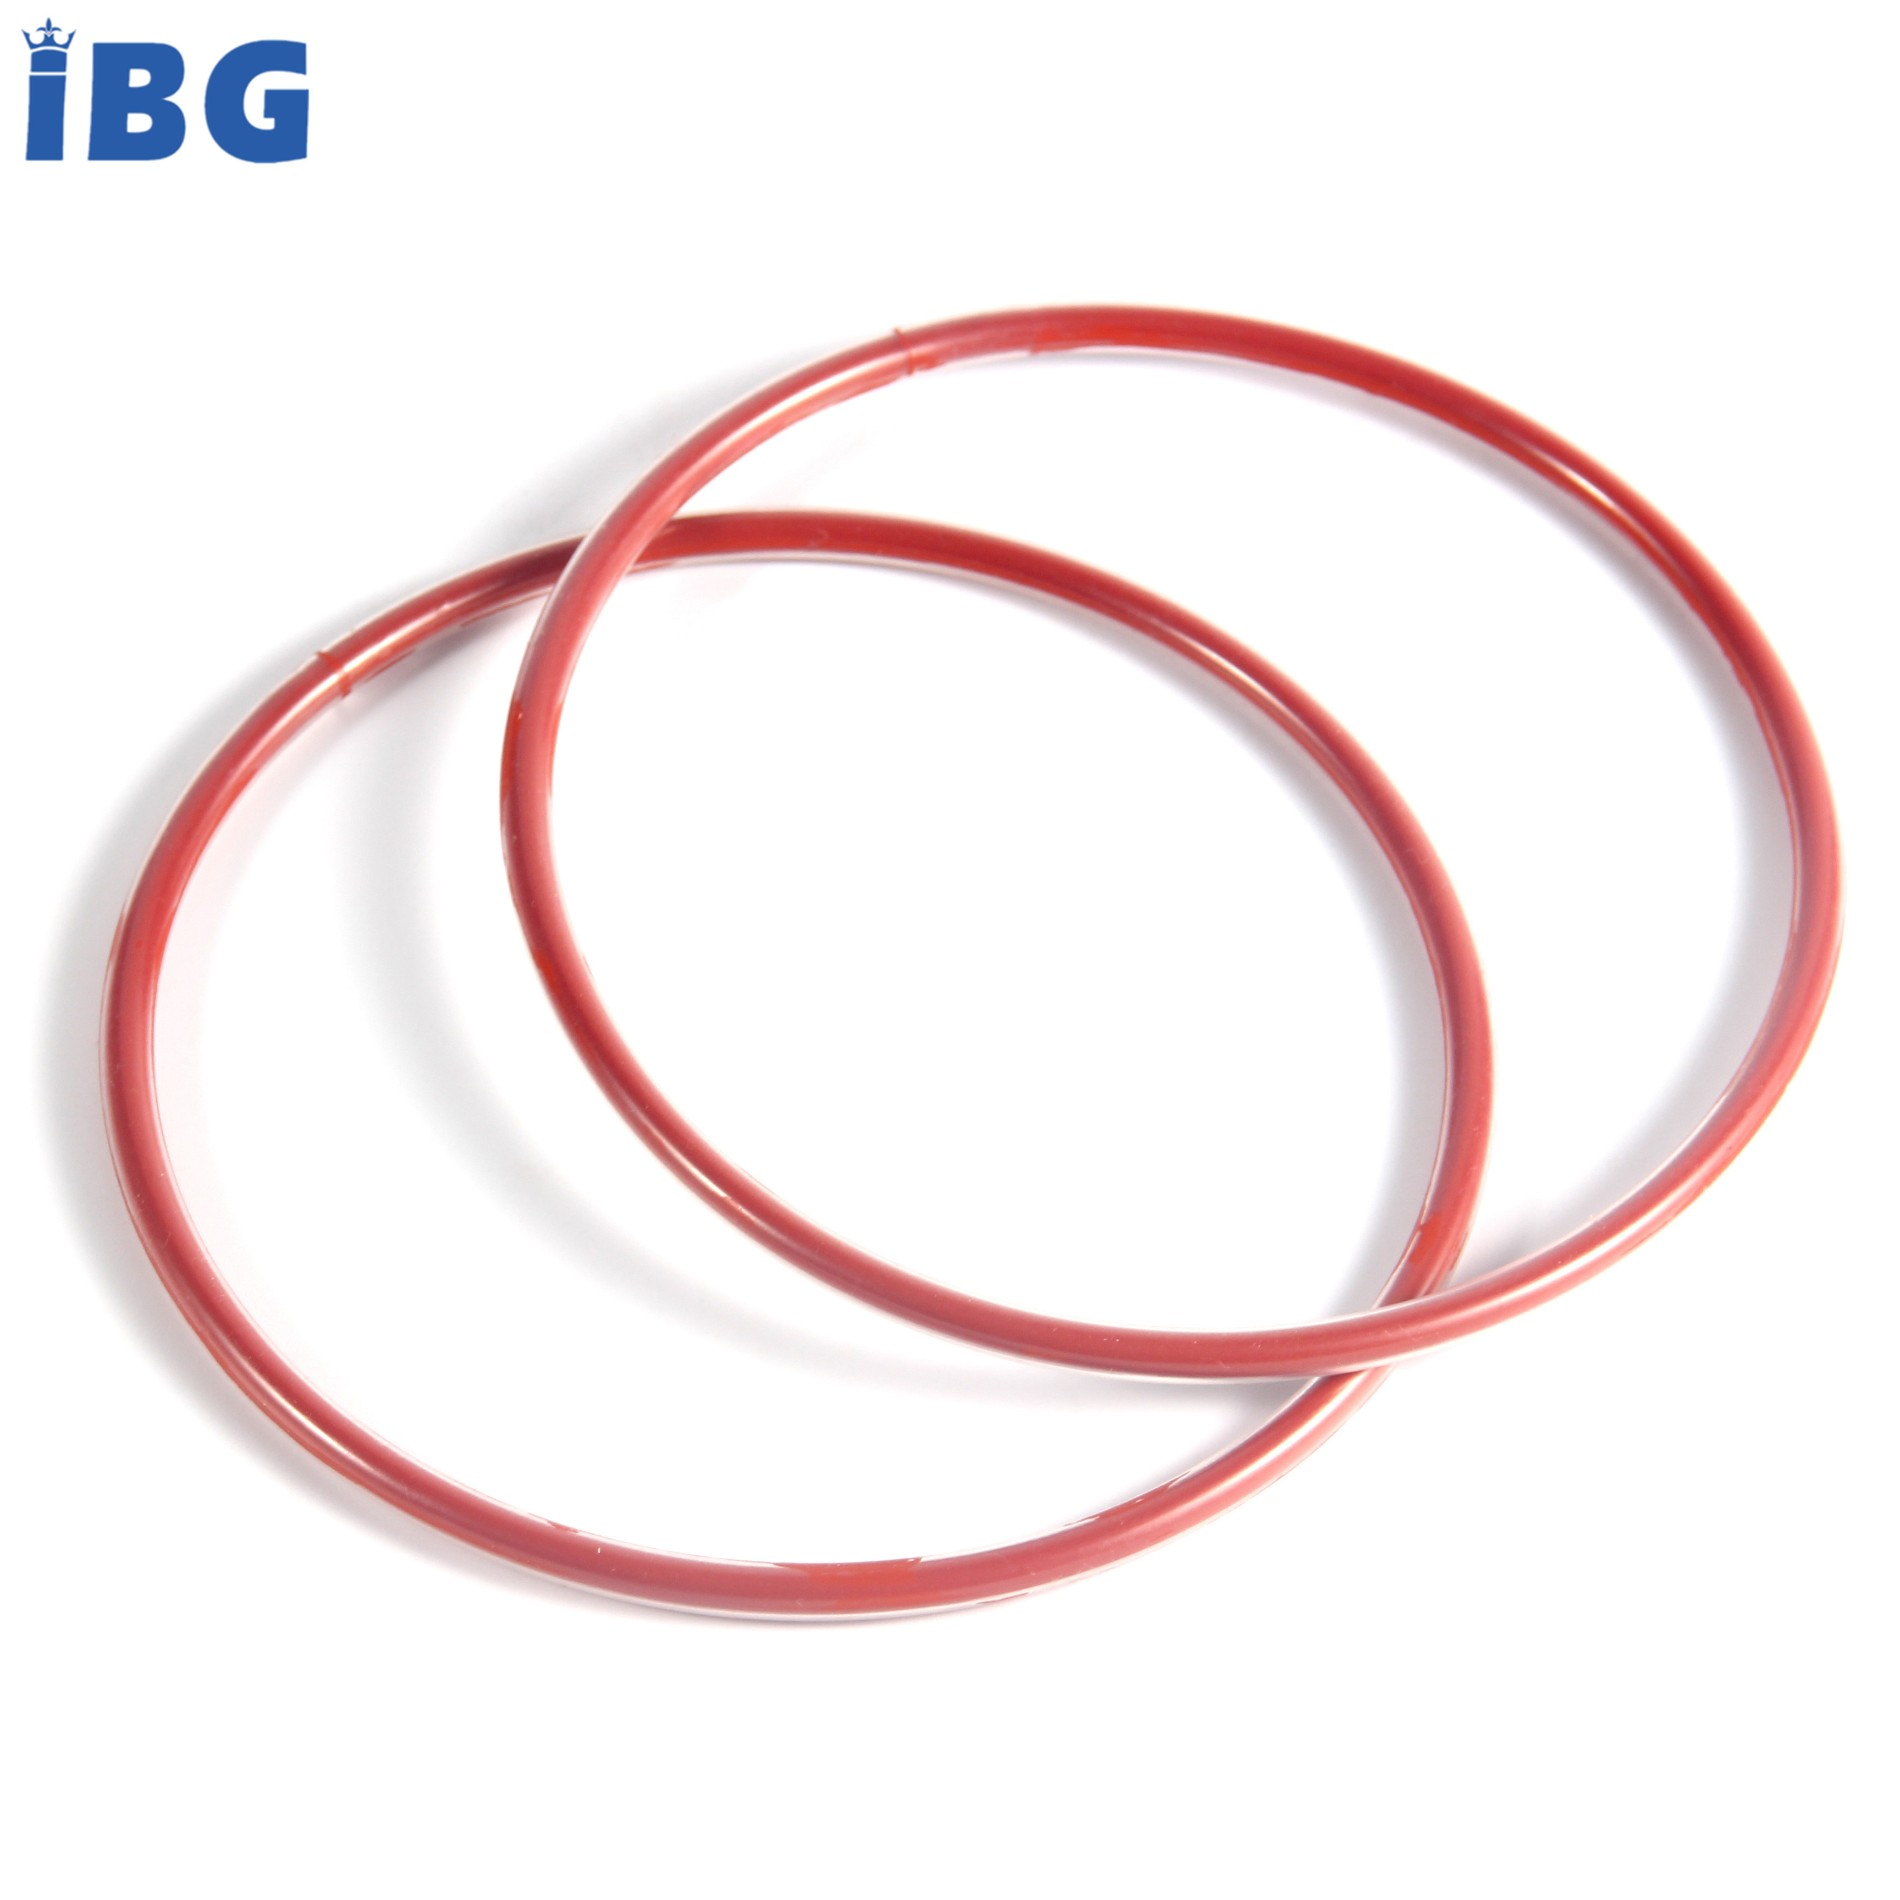 ISO9001/TS16949 Custom Moulded Corrosion-resistant Red Silicone And Teflon Coated O-rings